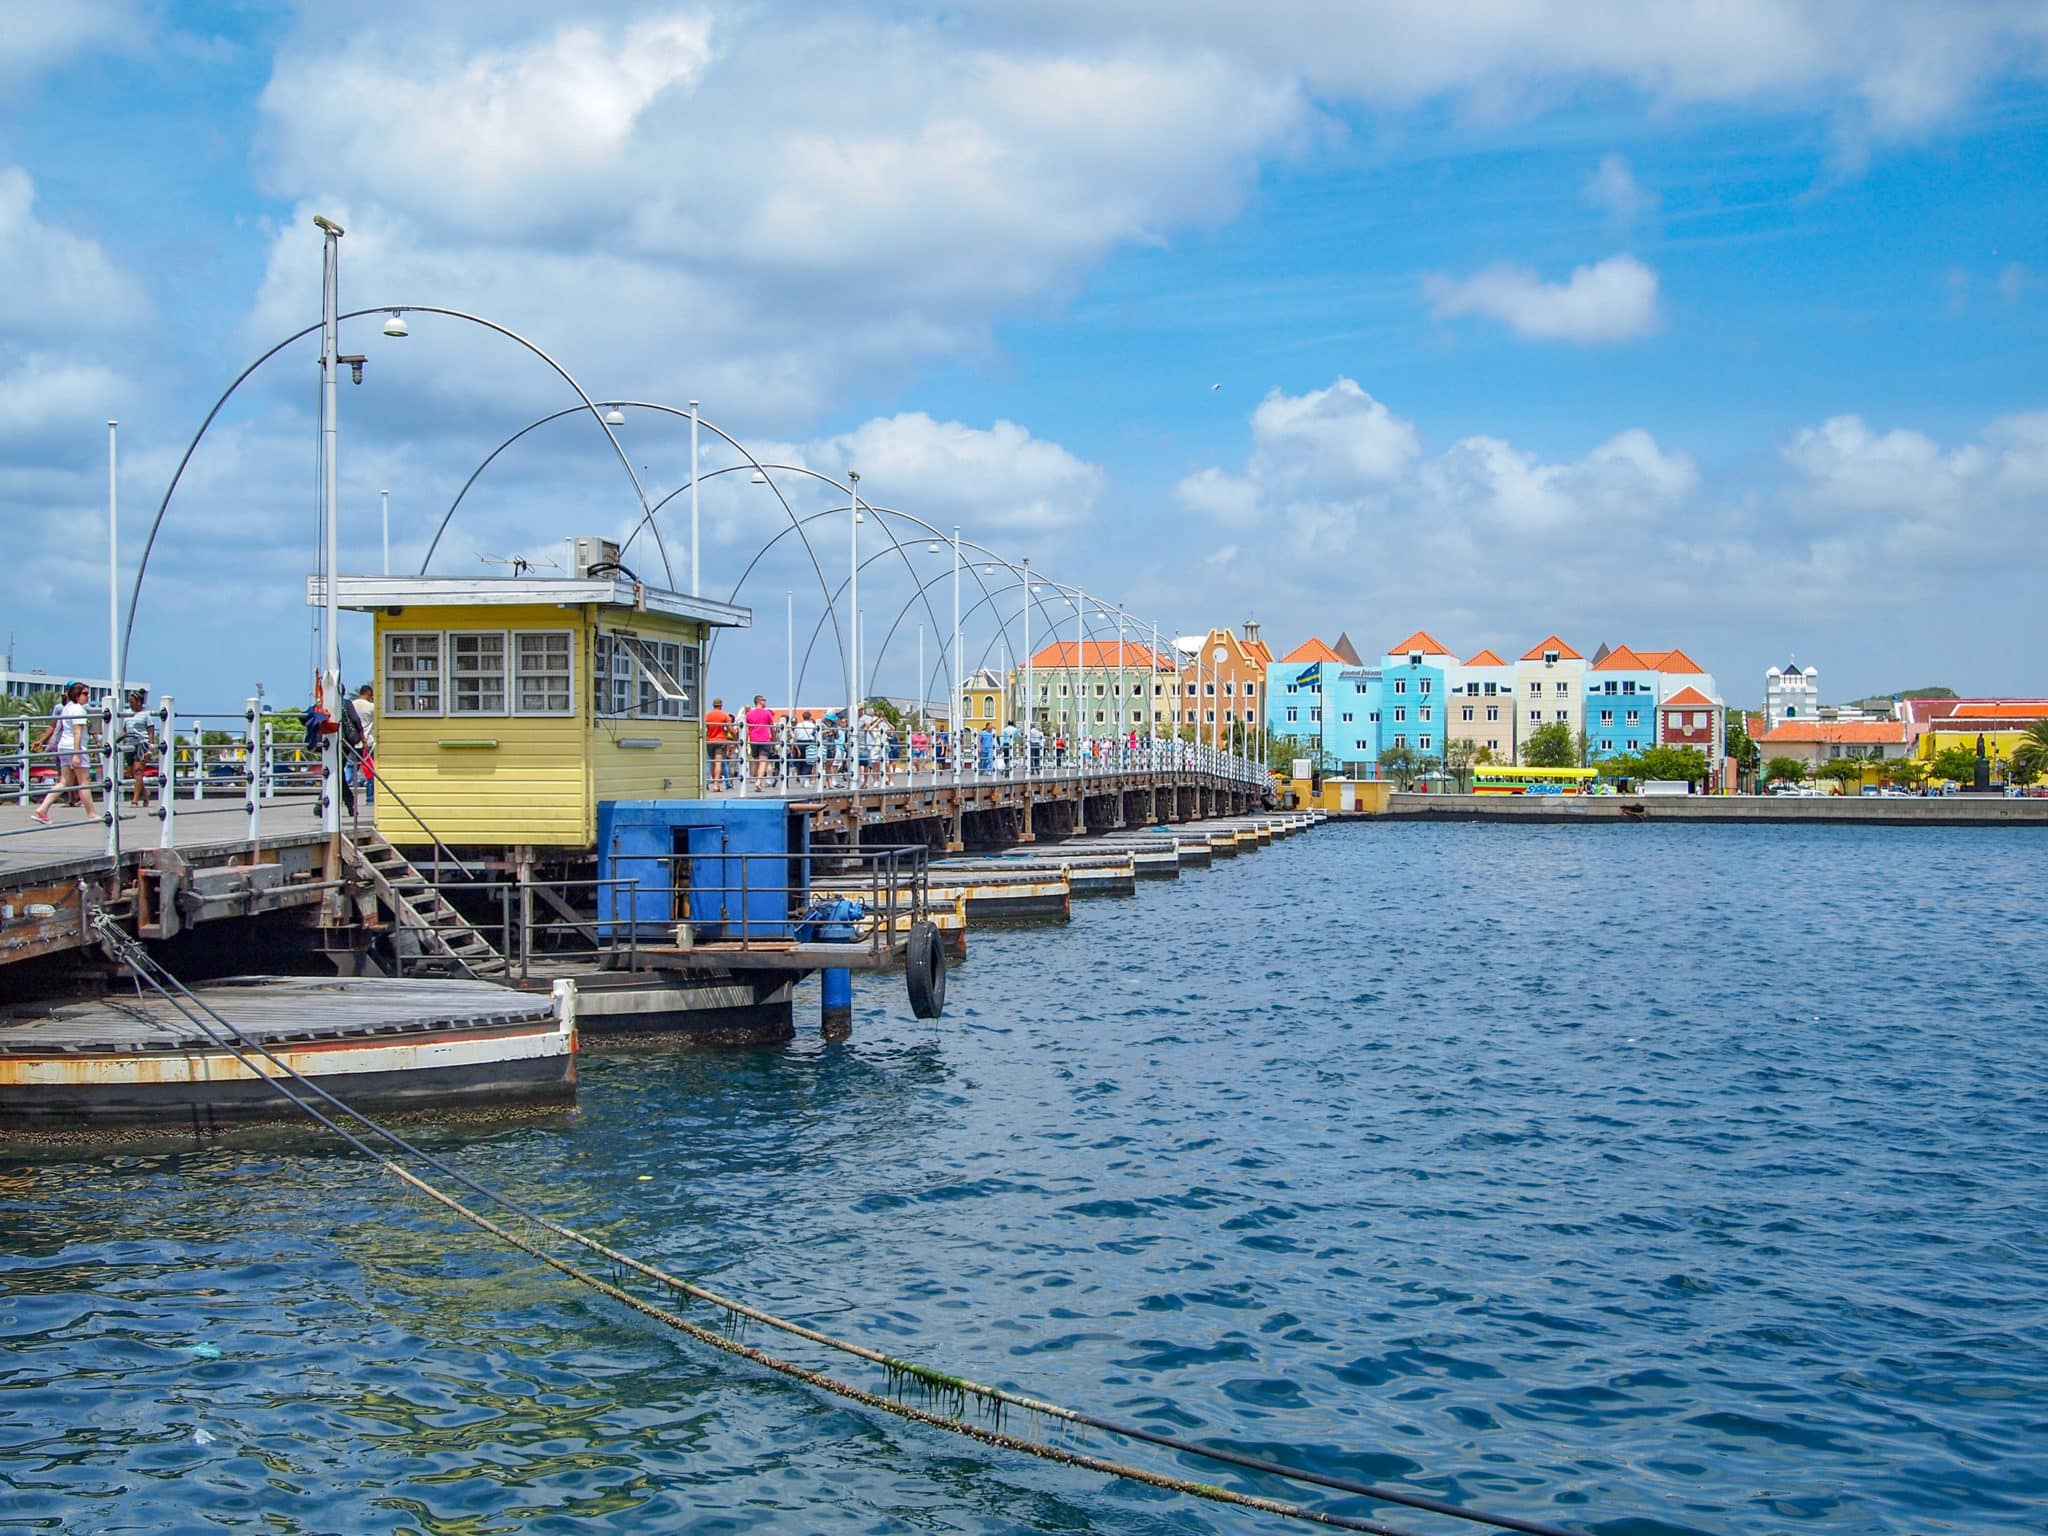 Pietermaai Party/Art Scene in Willemstad, Curacao